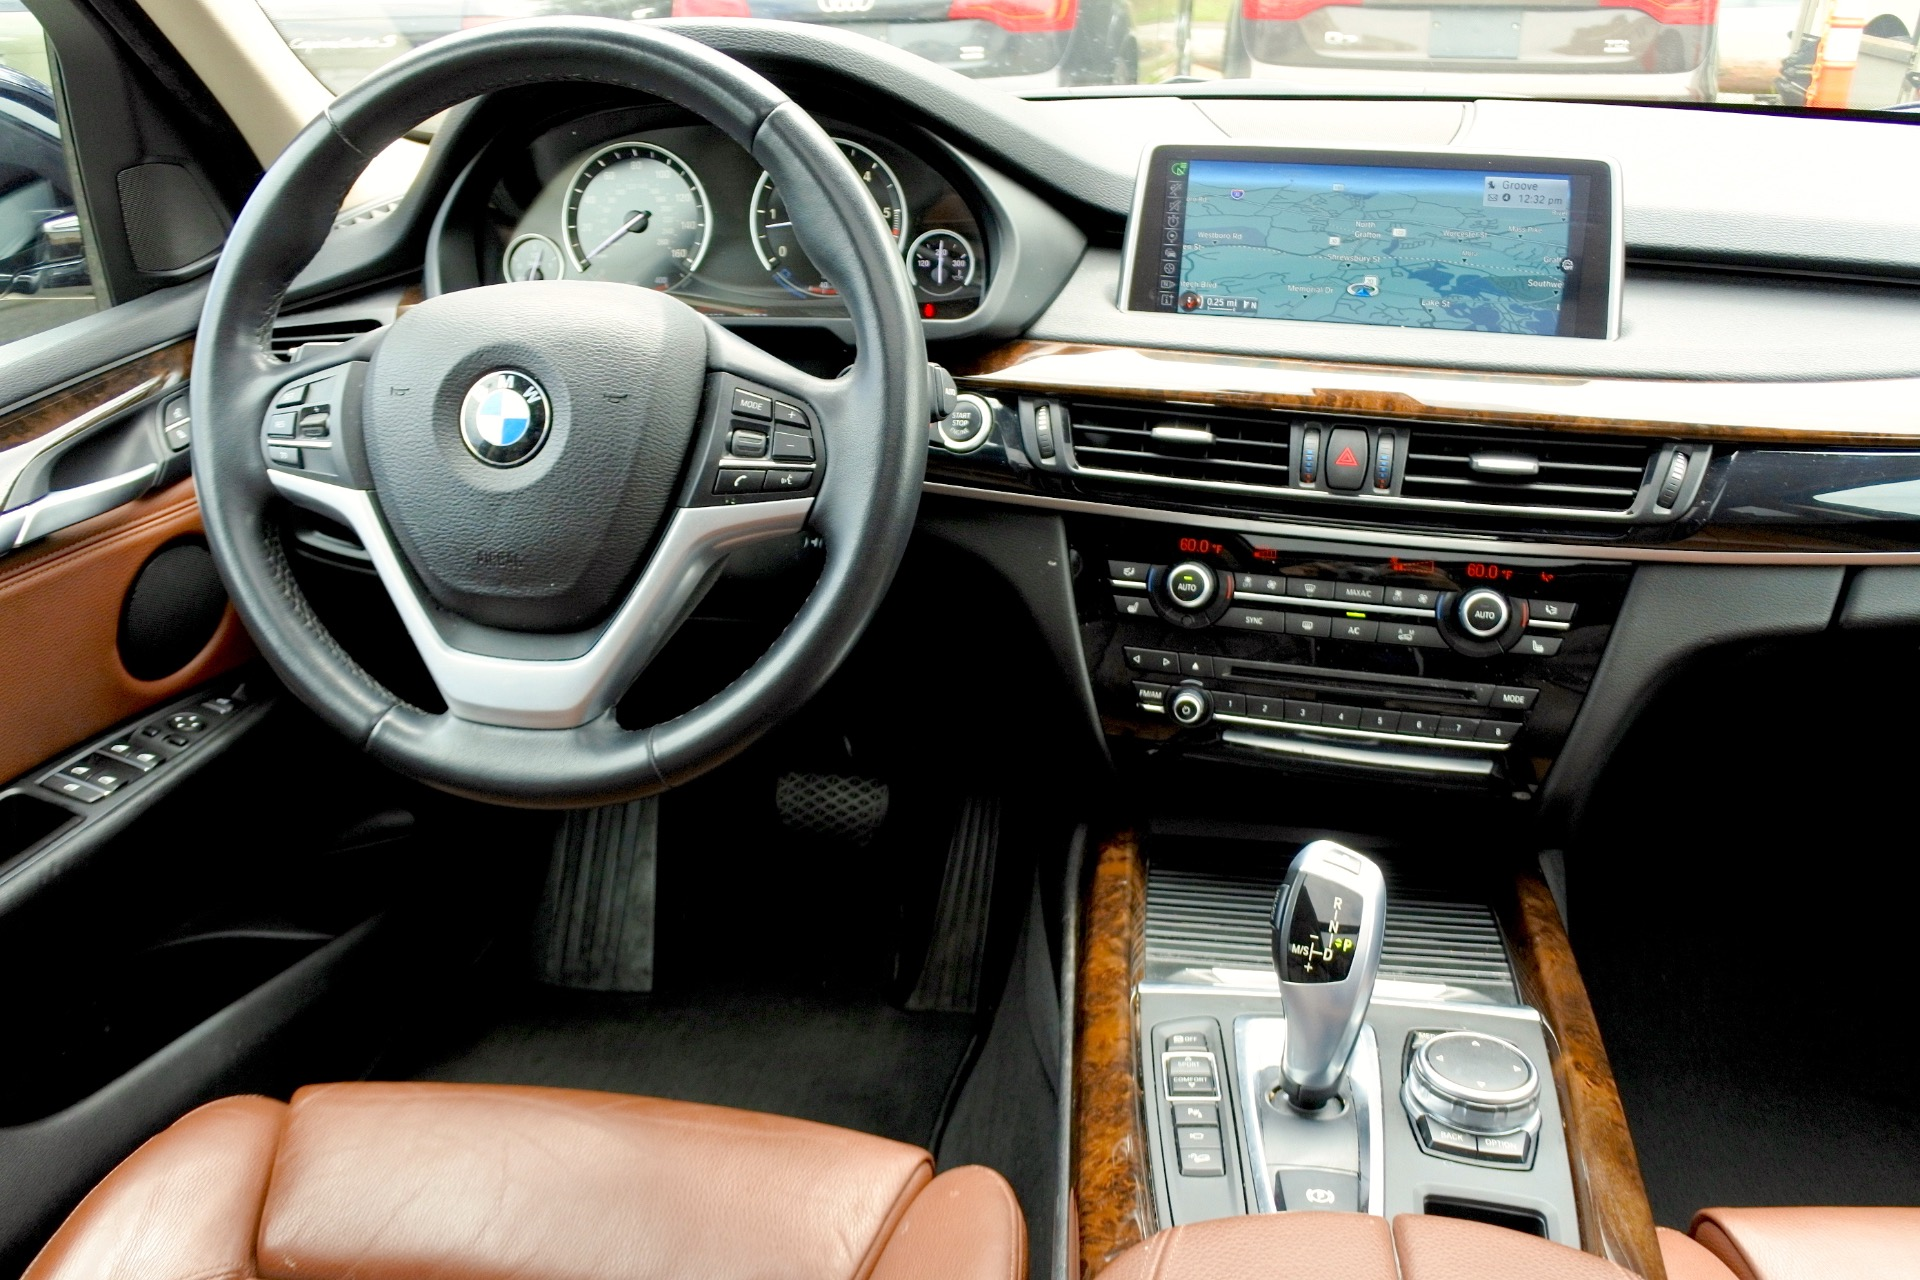 Used 2015 BMW X5 AWD 4dr xDrive35d Used 2015 BMW X5 AWD 4dr xDrive35d for sale  at Metro West Motorcars LLC in Shrewsbury MA 10